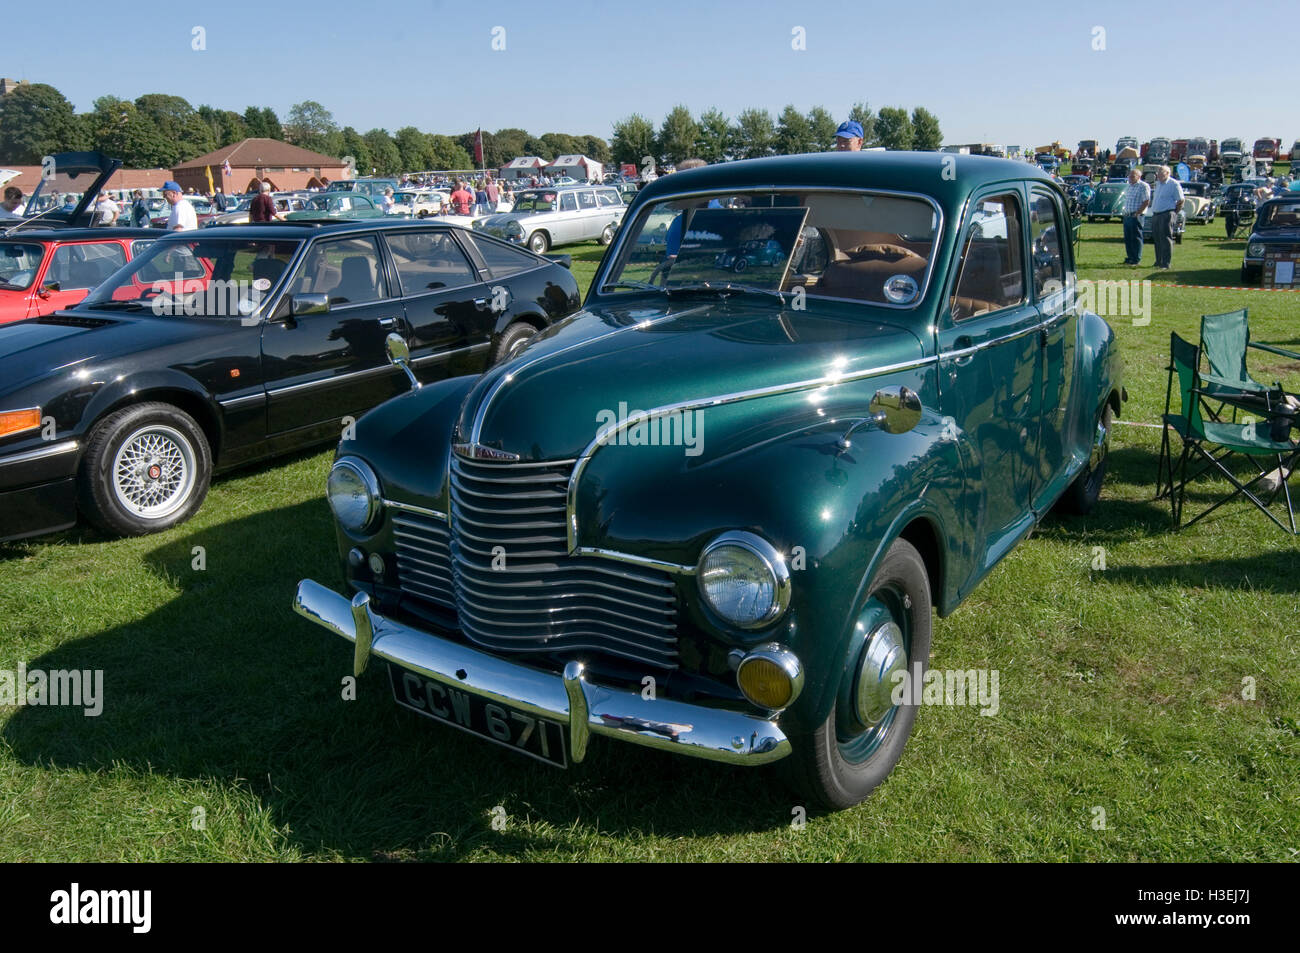 1da3f0eb075e9e Jowett Javelin Stock Photos   Jowett Javelin Stock Images - Alamy